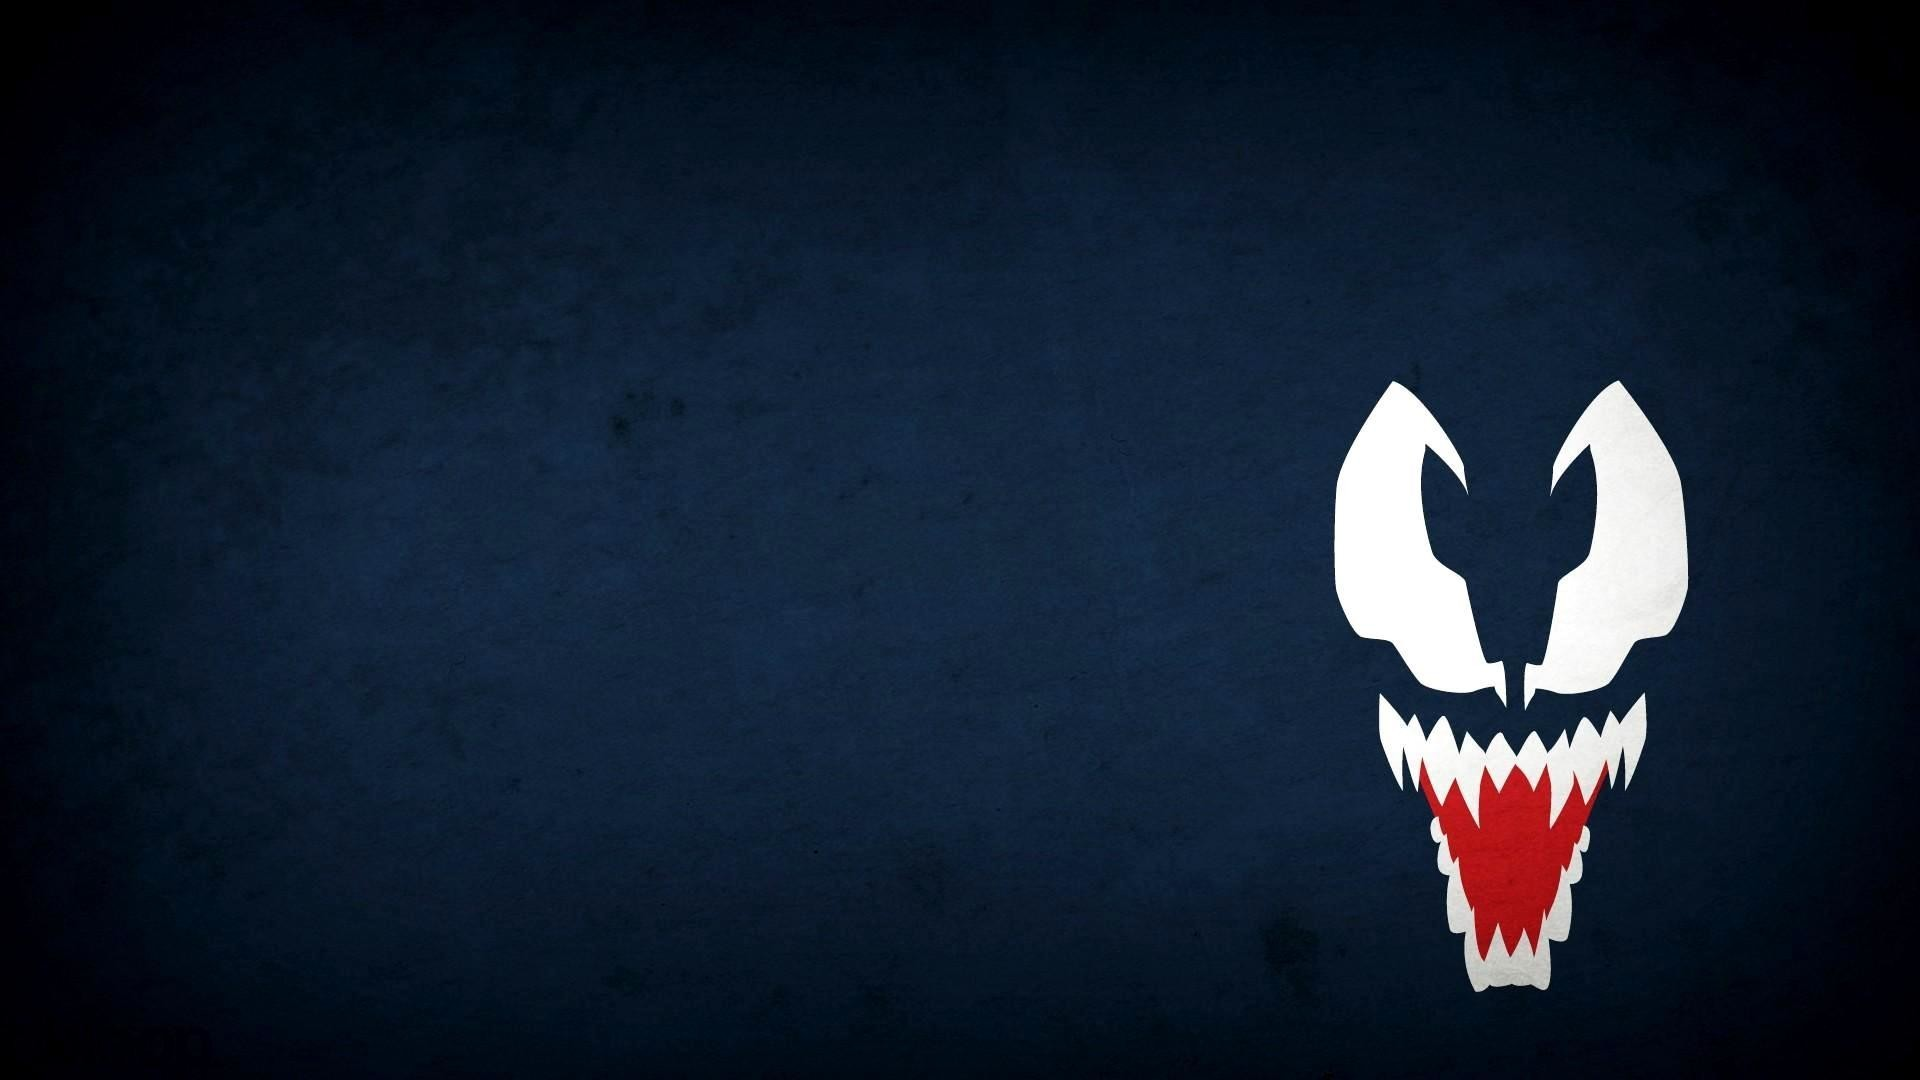 Res: 1920x1080,  Venom Wallpaper 26093 Hd Wallpapers in Movies - Telusers.com ·  Download ·  Wallpaper venom ...